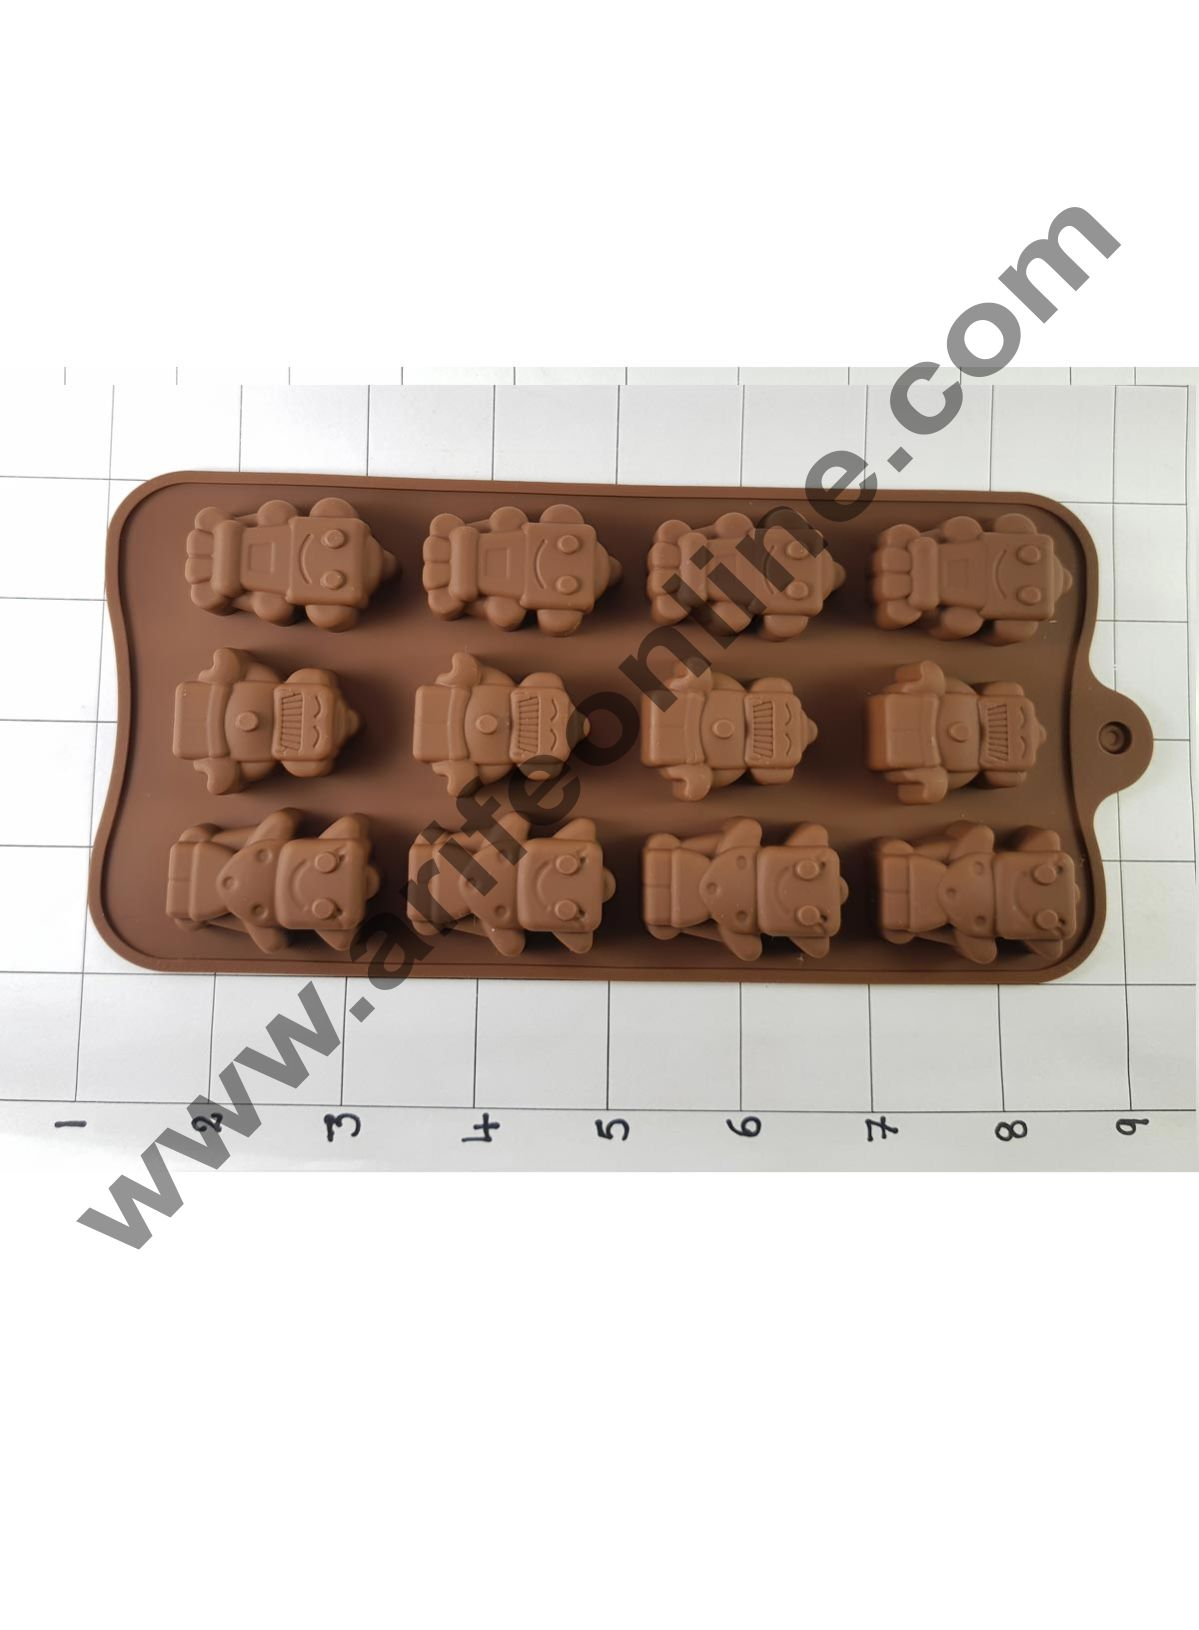 Cake Decor Silicon 15 Cavity Robot Shape Design Brown Chocolate Mould, Ice Mould, Chocolate Decorating Mould